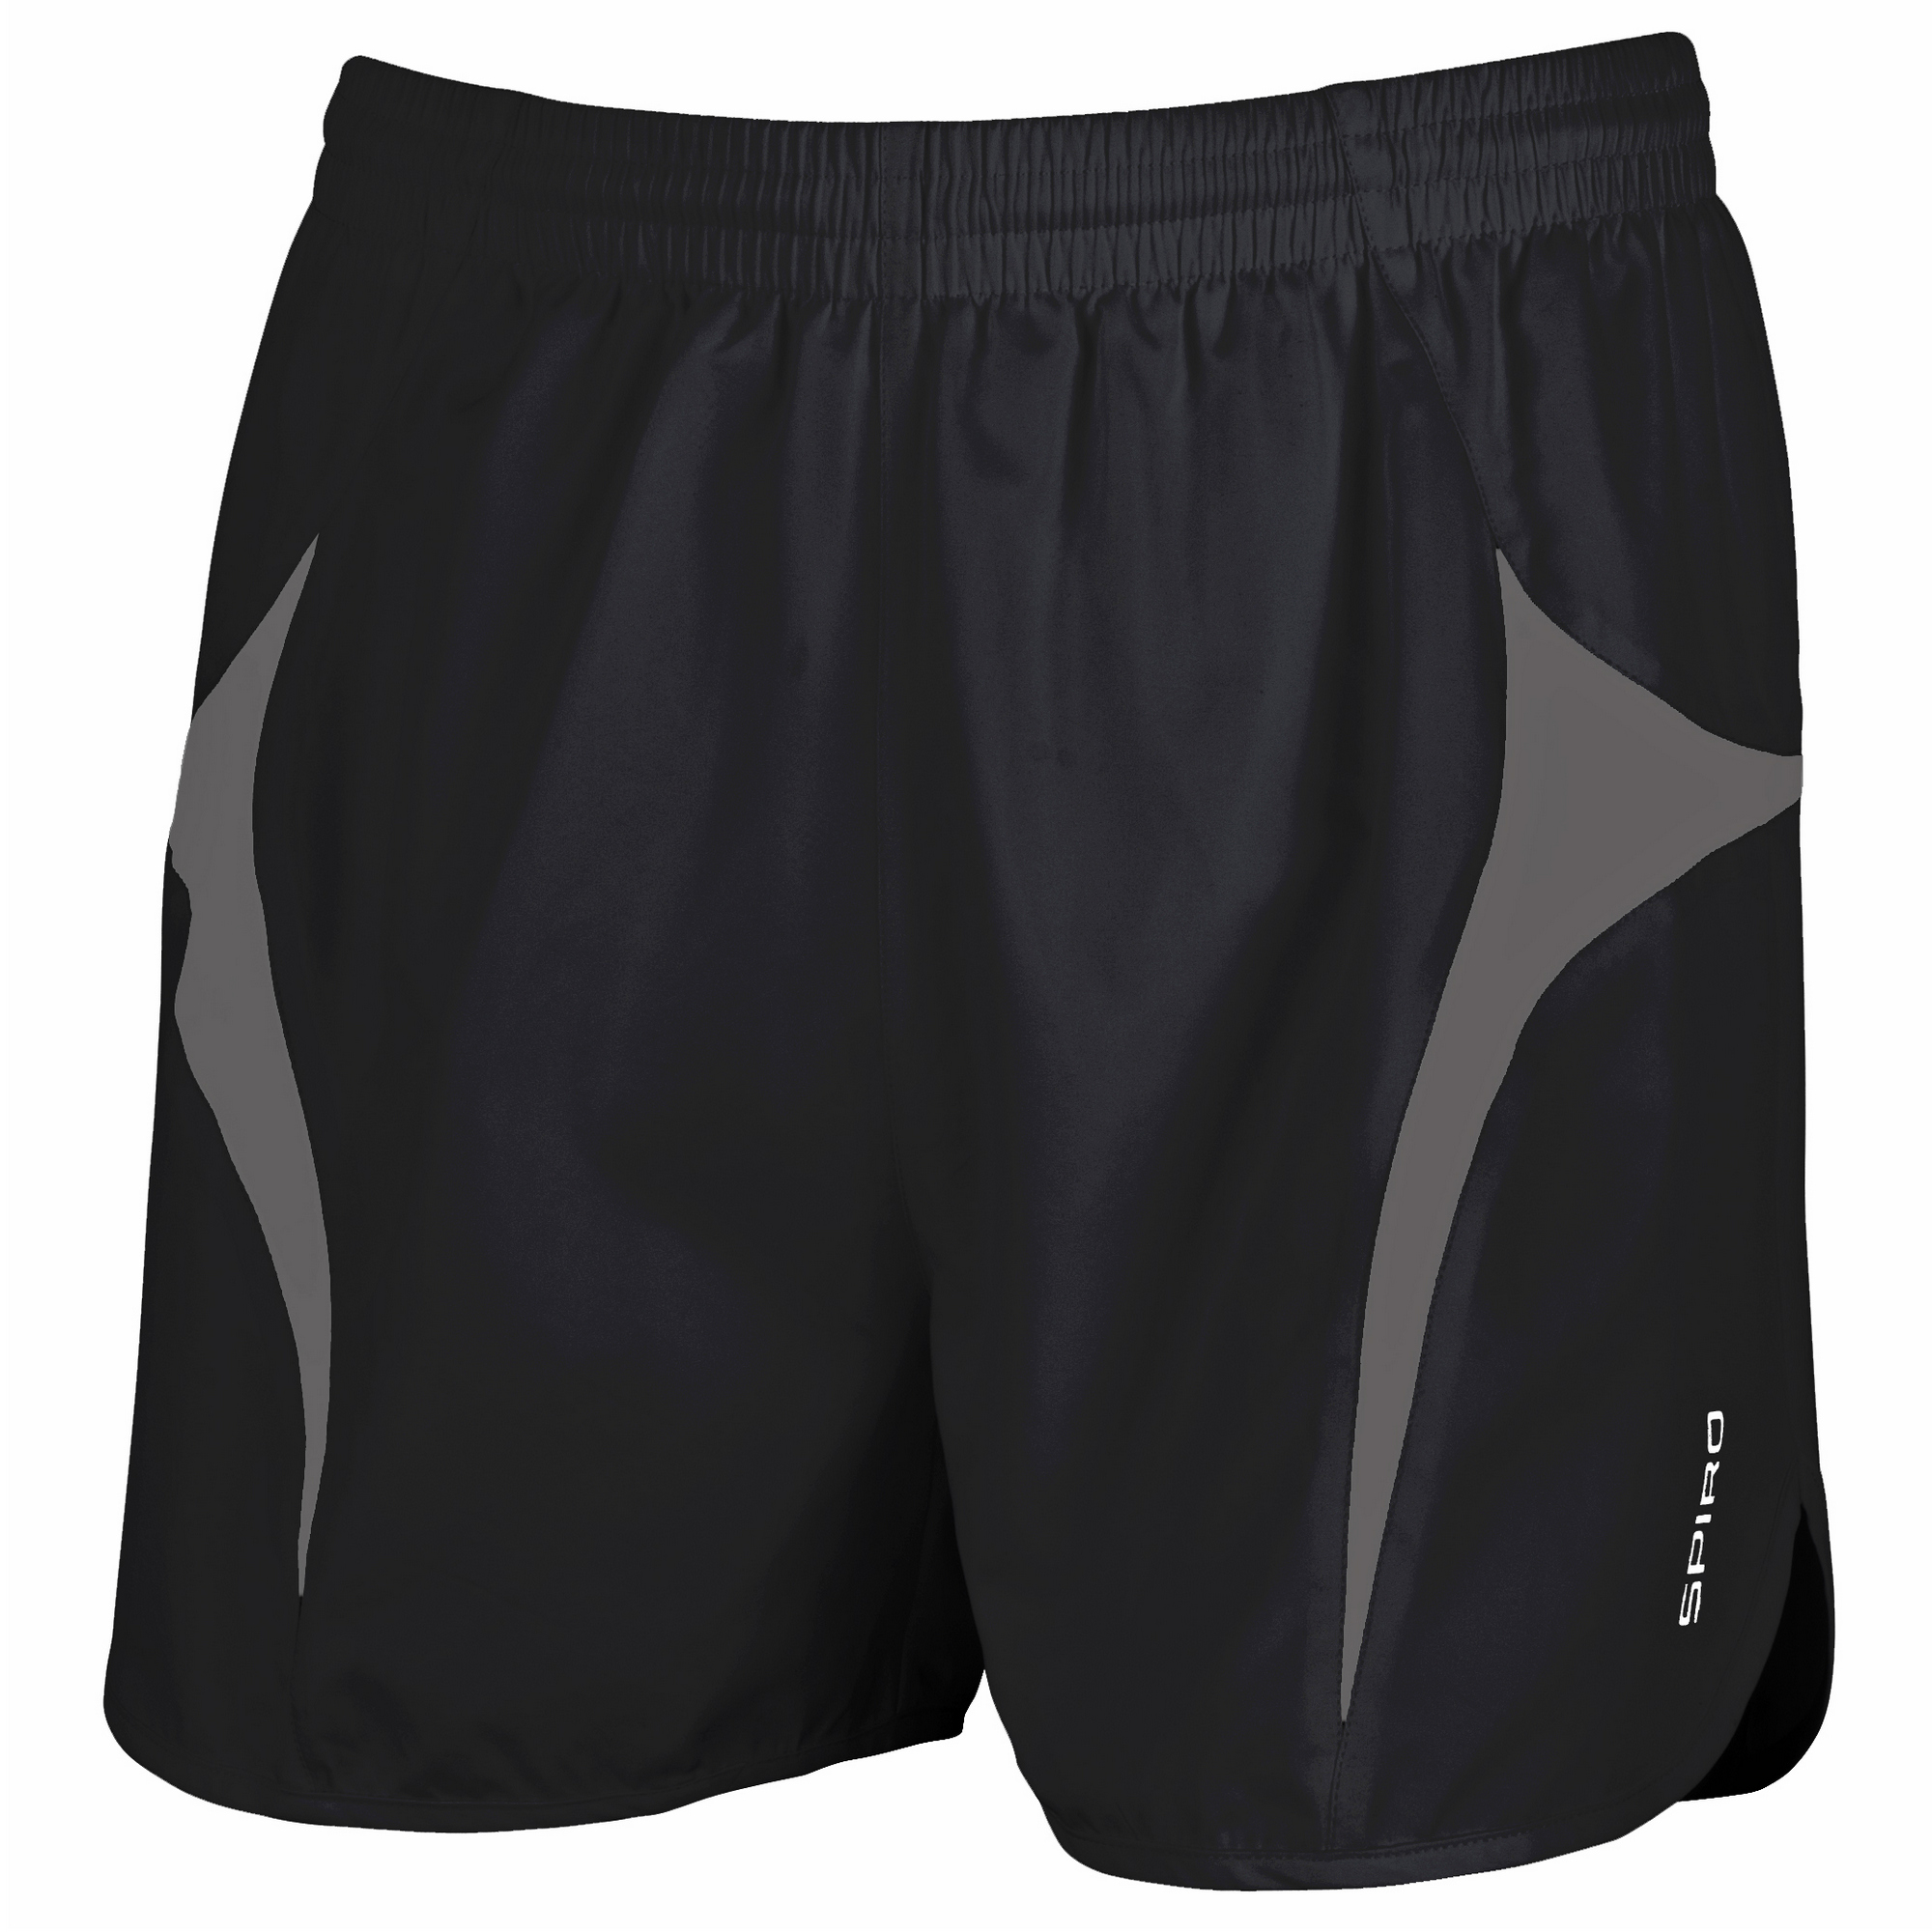 Running shorts for men should be practical whether you are using them for treadmill workouts, marathons, shooting hoops, or cross training. Road Runner Sports has the best unlined, lined, compression, fitted, 2-in-1, and cycling men?s running shorts from popular brands.